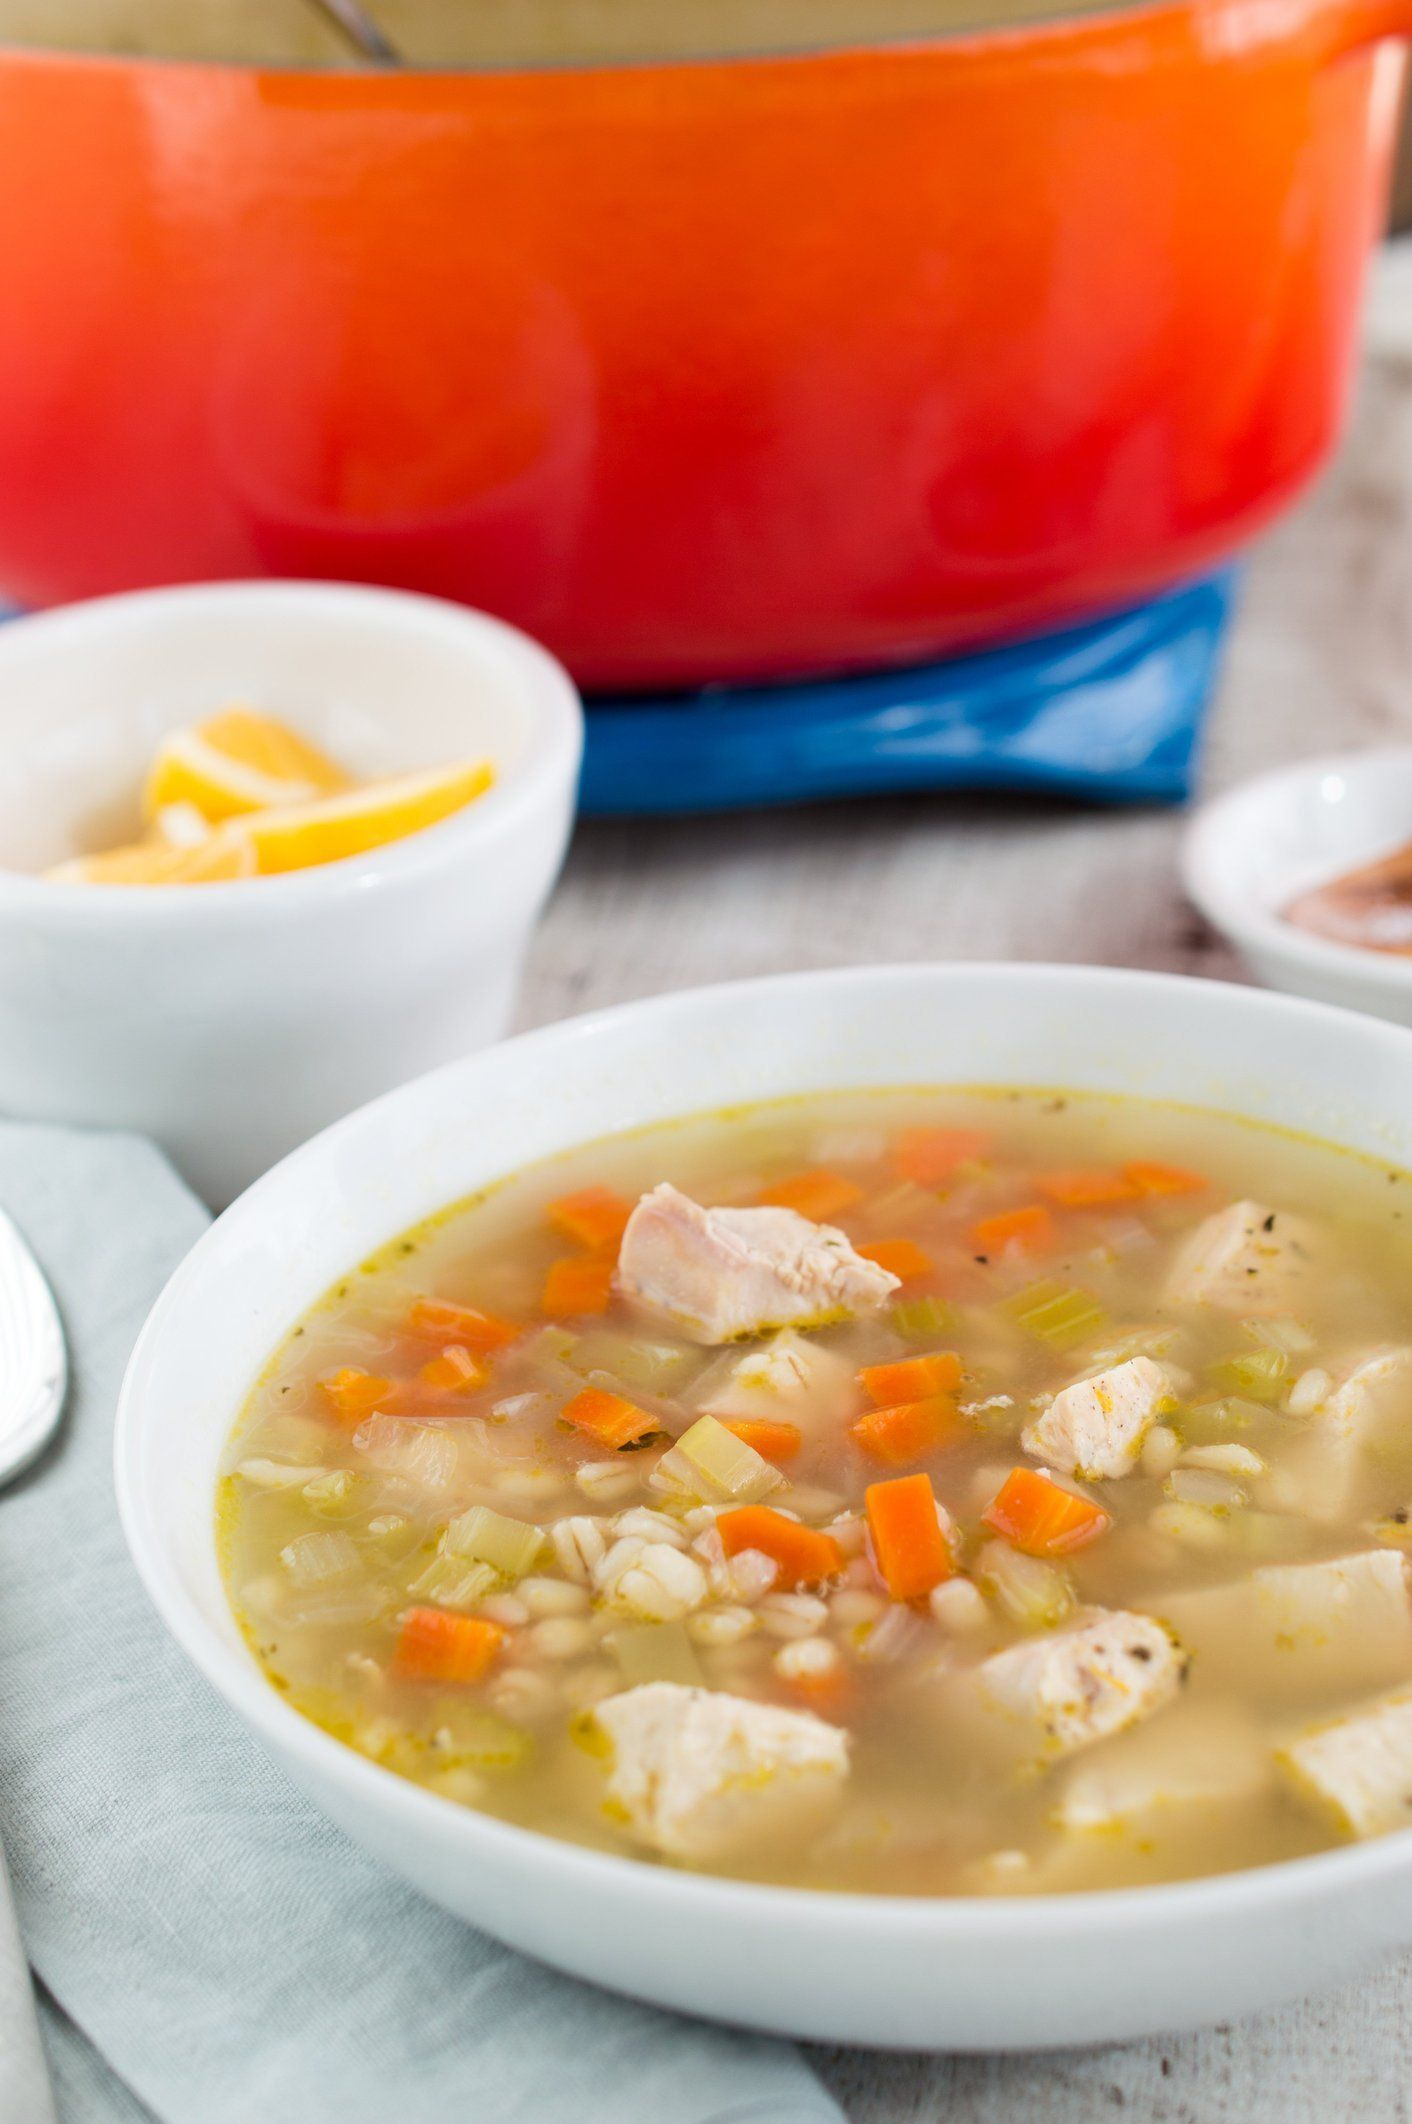 Chicken and Barley Soup Recipe Barley soup, Soup